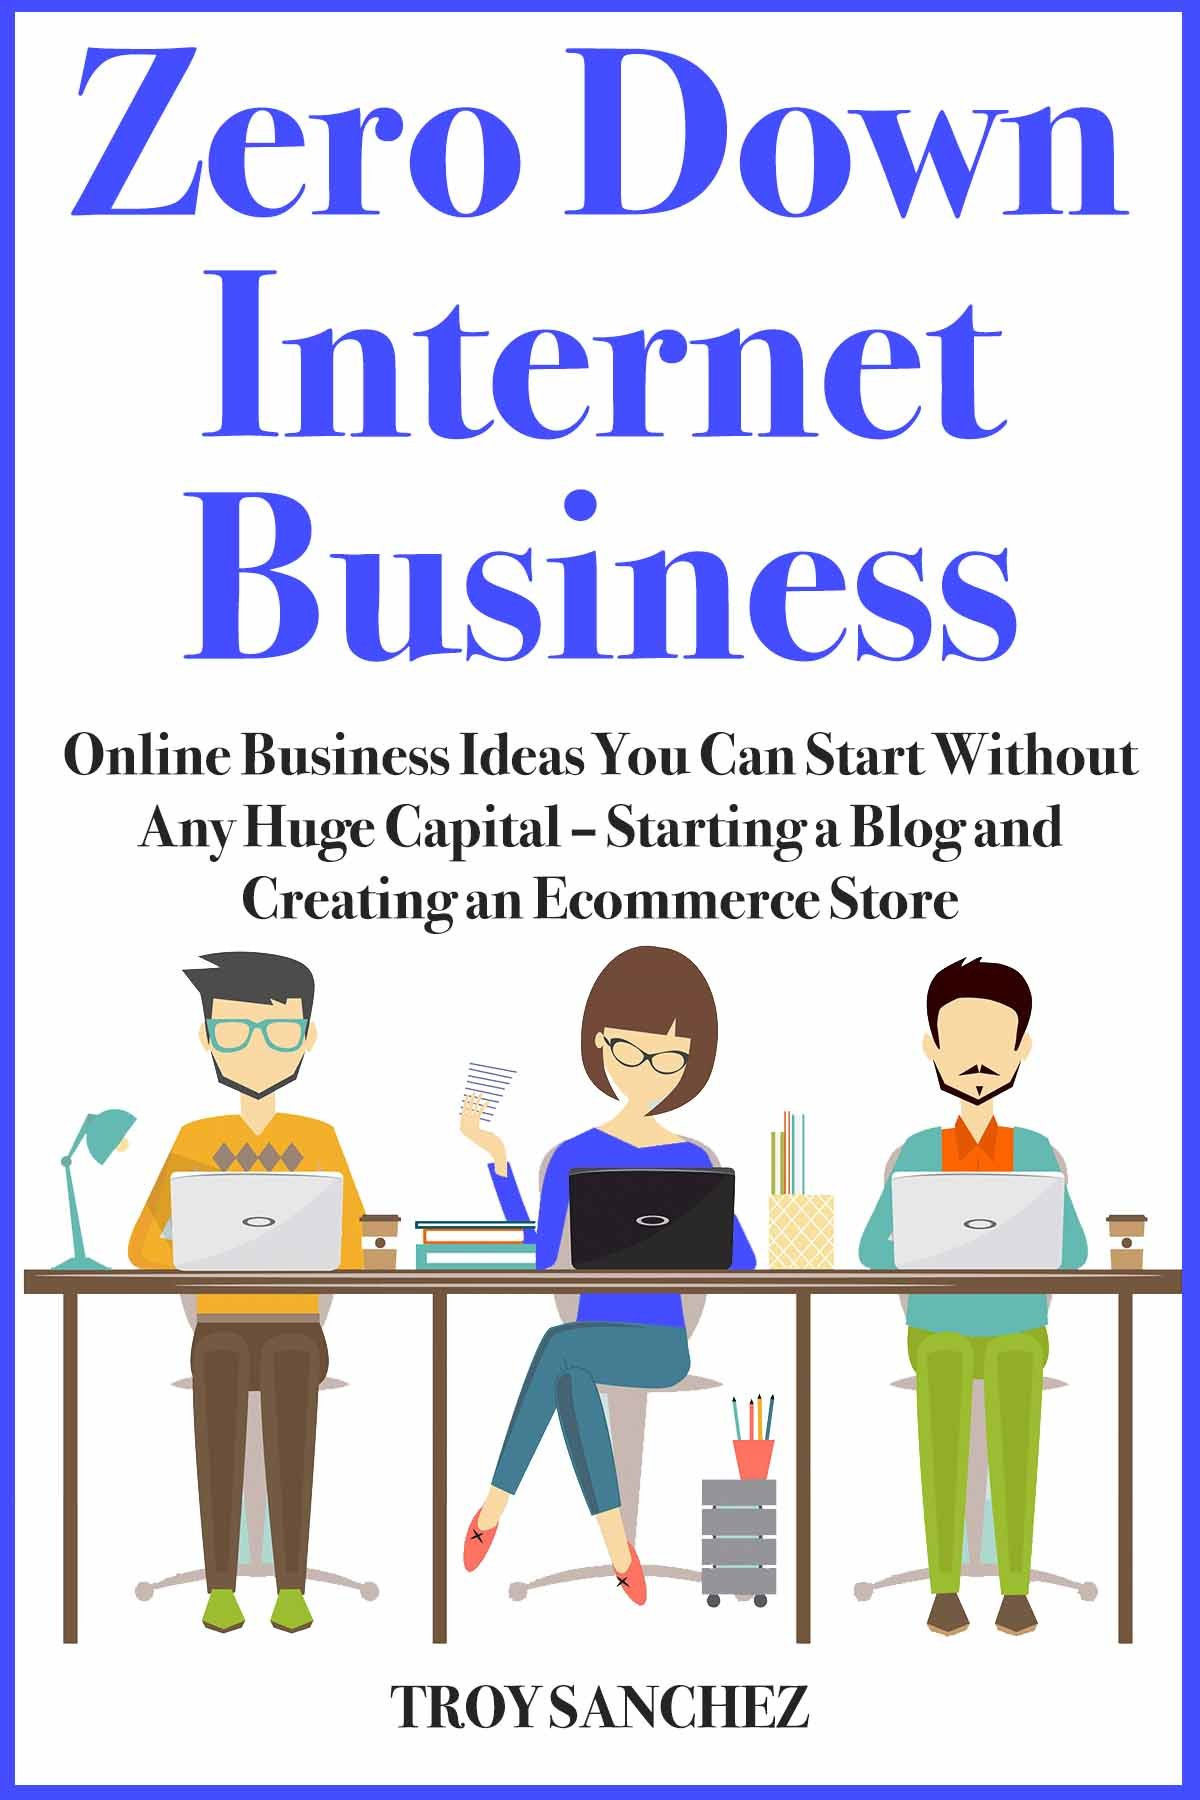 Zero Down Internet Business: Online Business Ideas You Can Start Without Any Huge Capital – Starting a Blog and Creating an Ecommerce Store